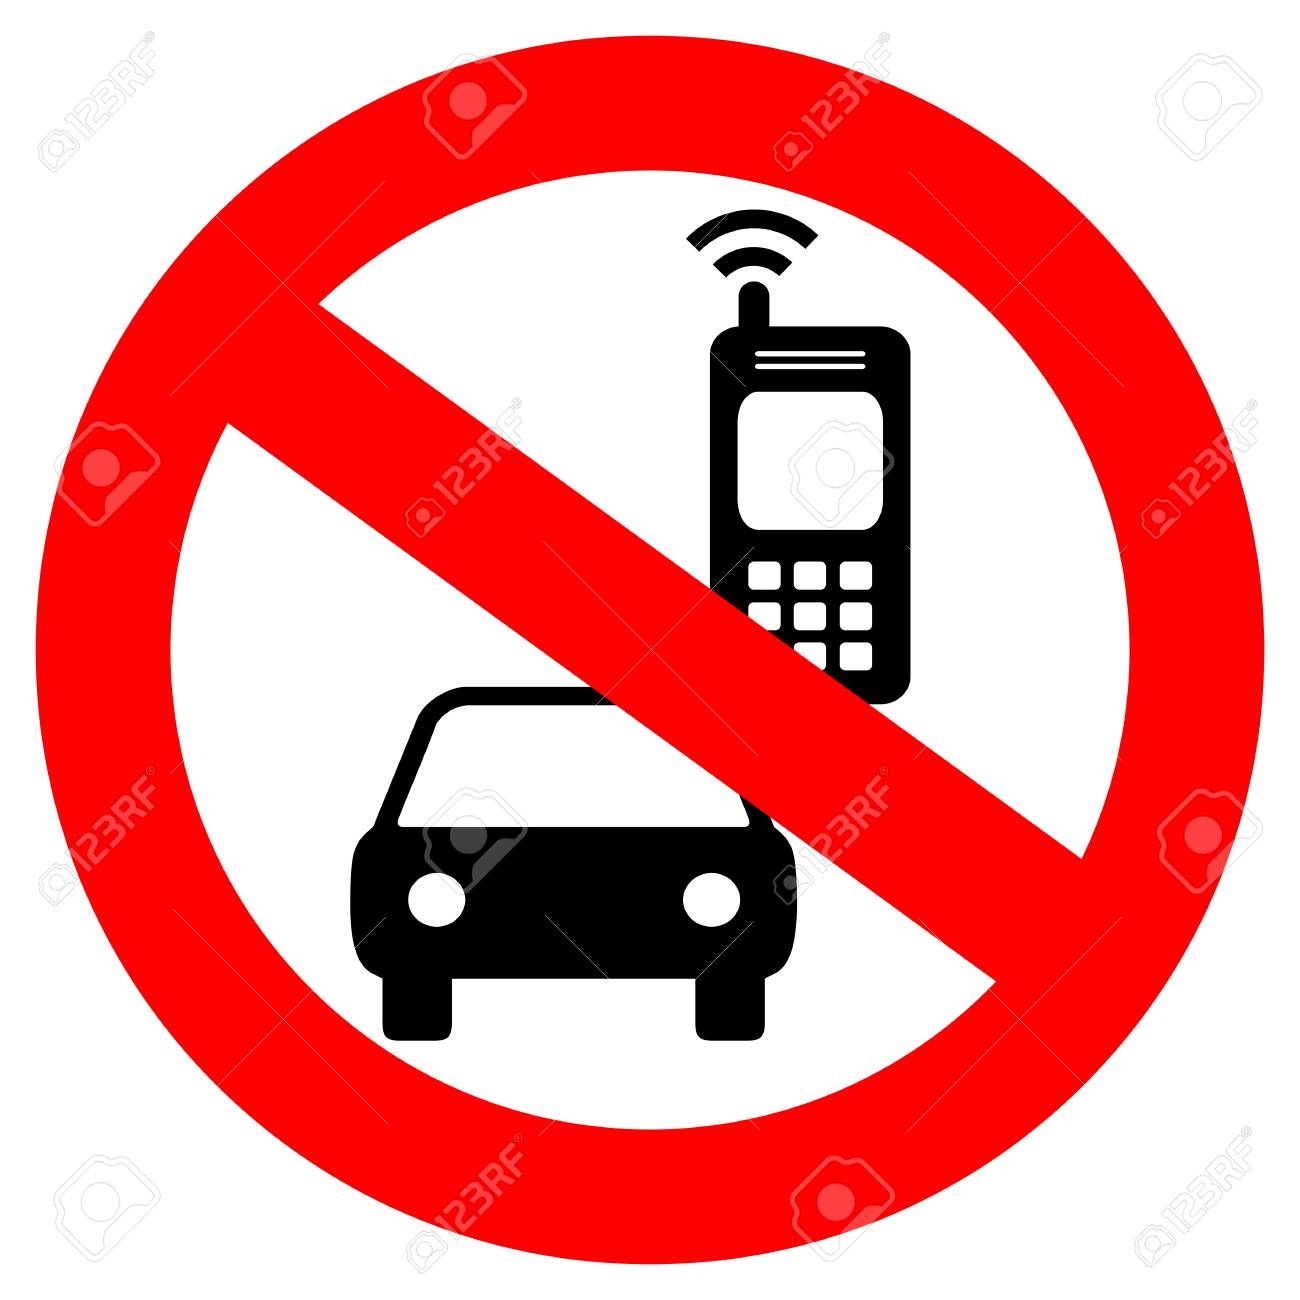 No cell phone while driving vector sign - 97441725